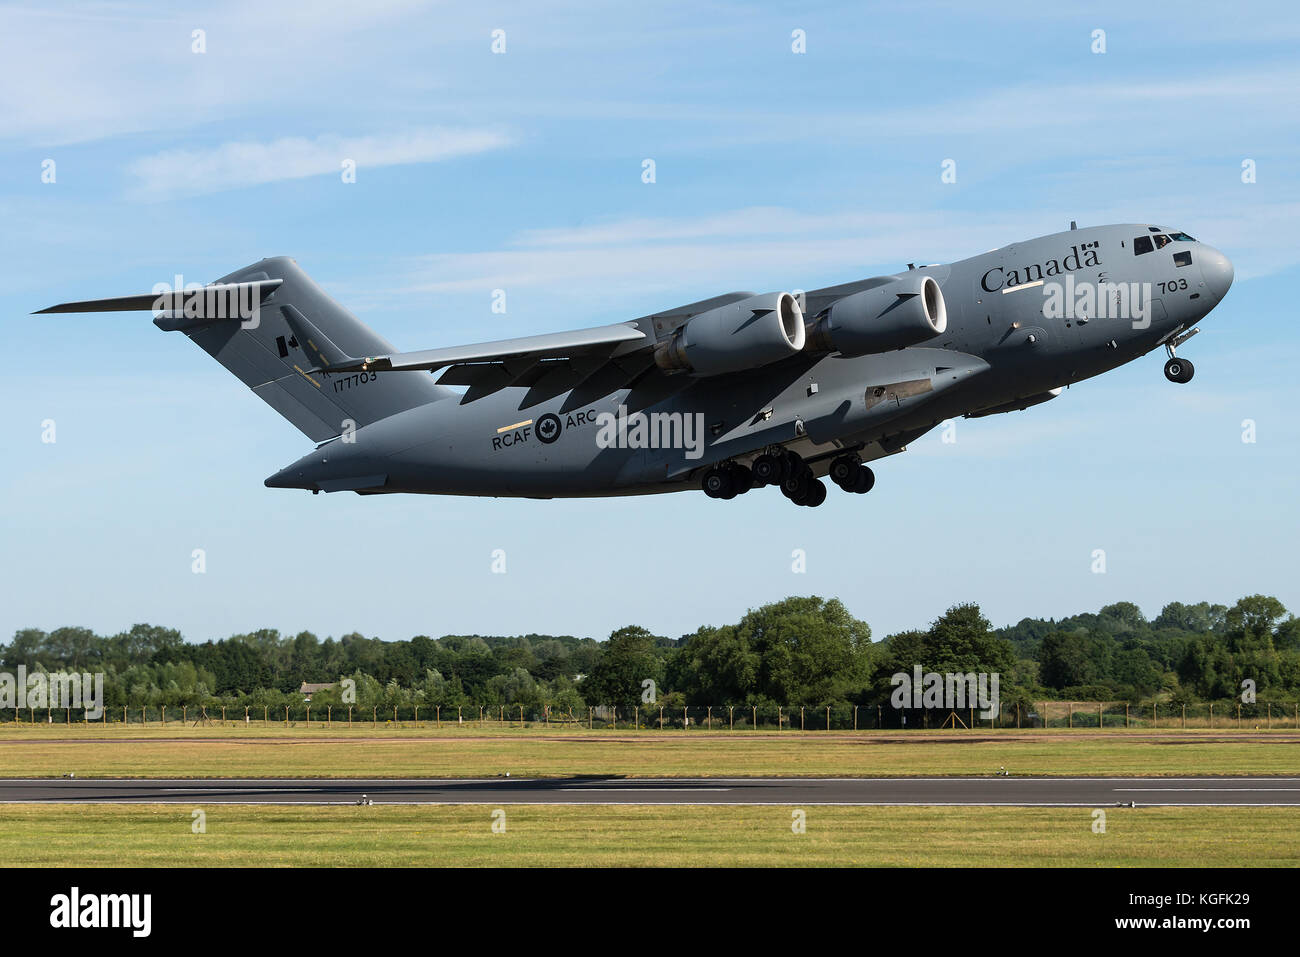 A C-17 Globemaster military transport aircraft of the 429 Transport Squadron of the Royal Canadian Air Force at Stock Photo